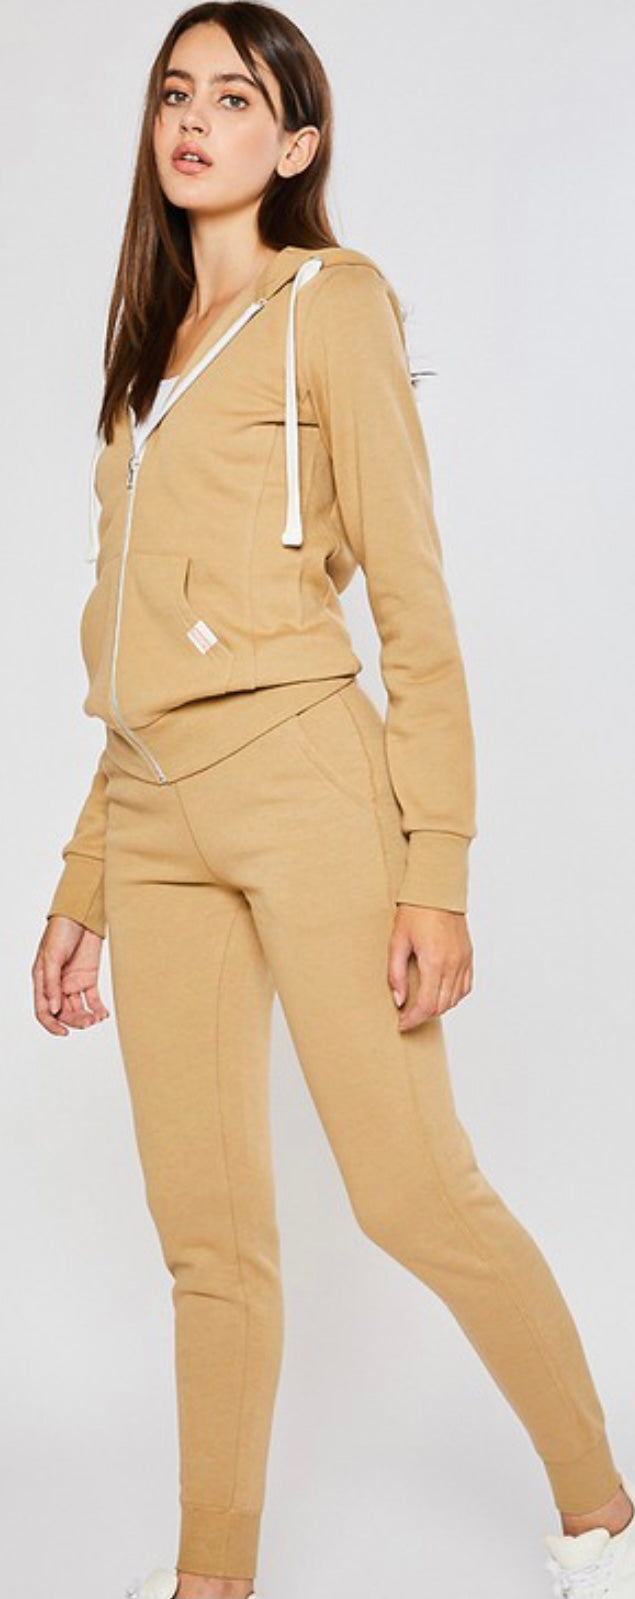 Soft Spot High Waist Joggers In Golden Tan